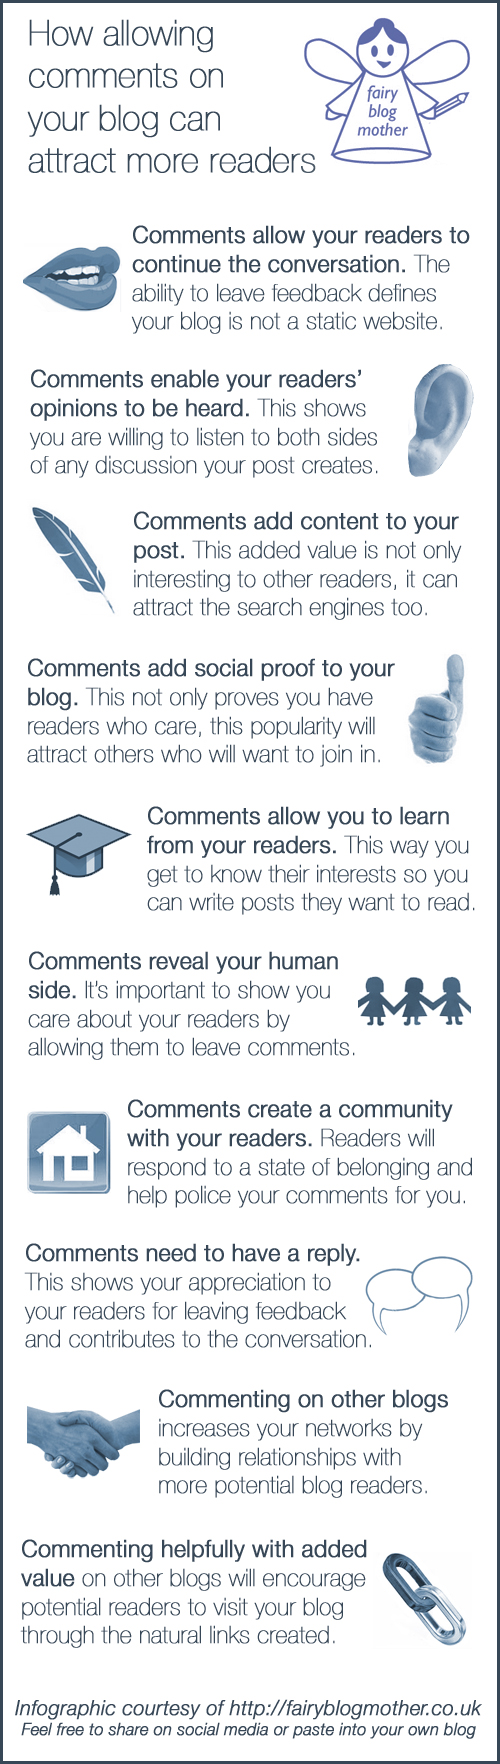 How allowing comments on your blog can attract more readers